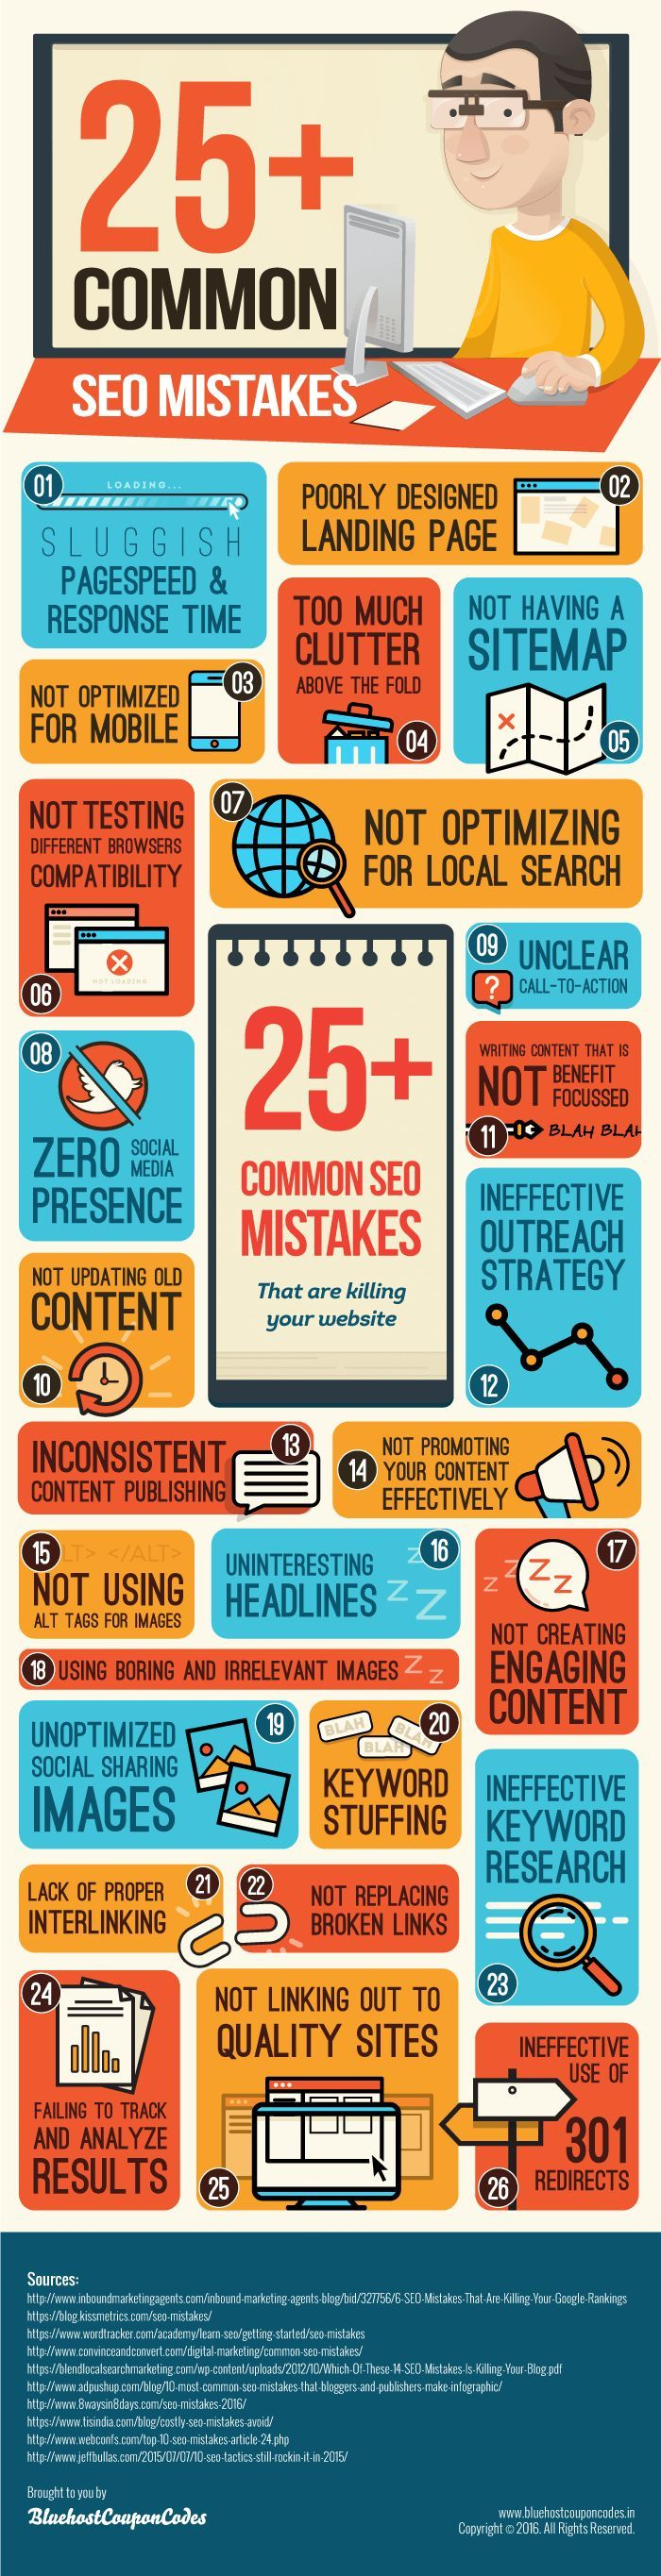 Blogging tips: Are you making common SEO mistakes? Many small businesses are. If so, you're wasting time and money maintaining a website that's not getting traffic. Fix these blunders with the tips on this infographic!